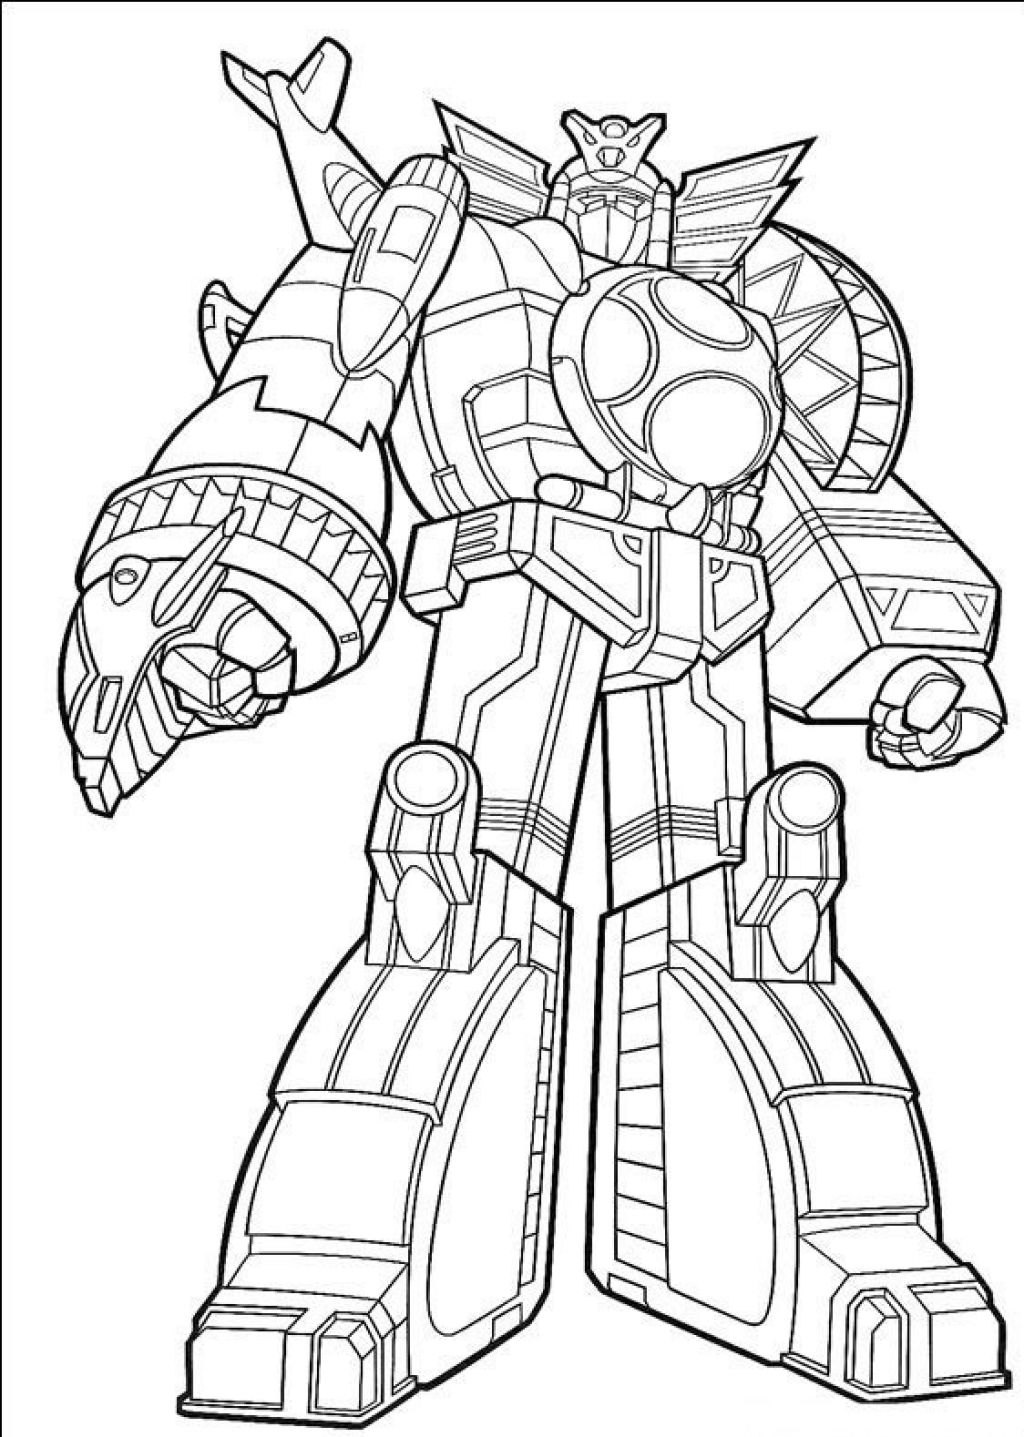 power rangers pictures to color power rangers coloring pages free large images pictures color rangers power to